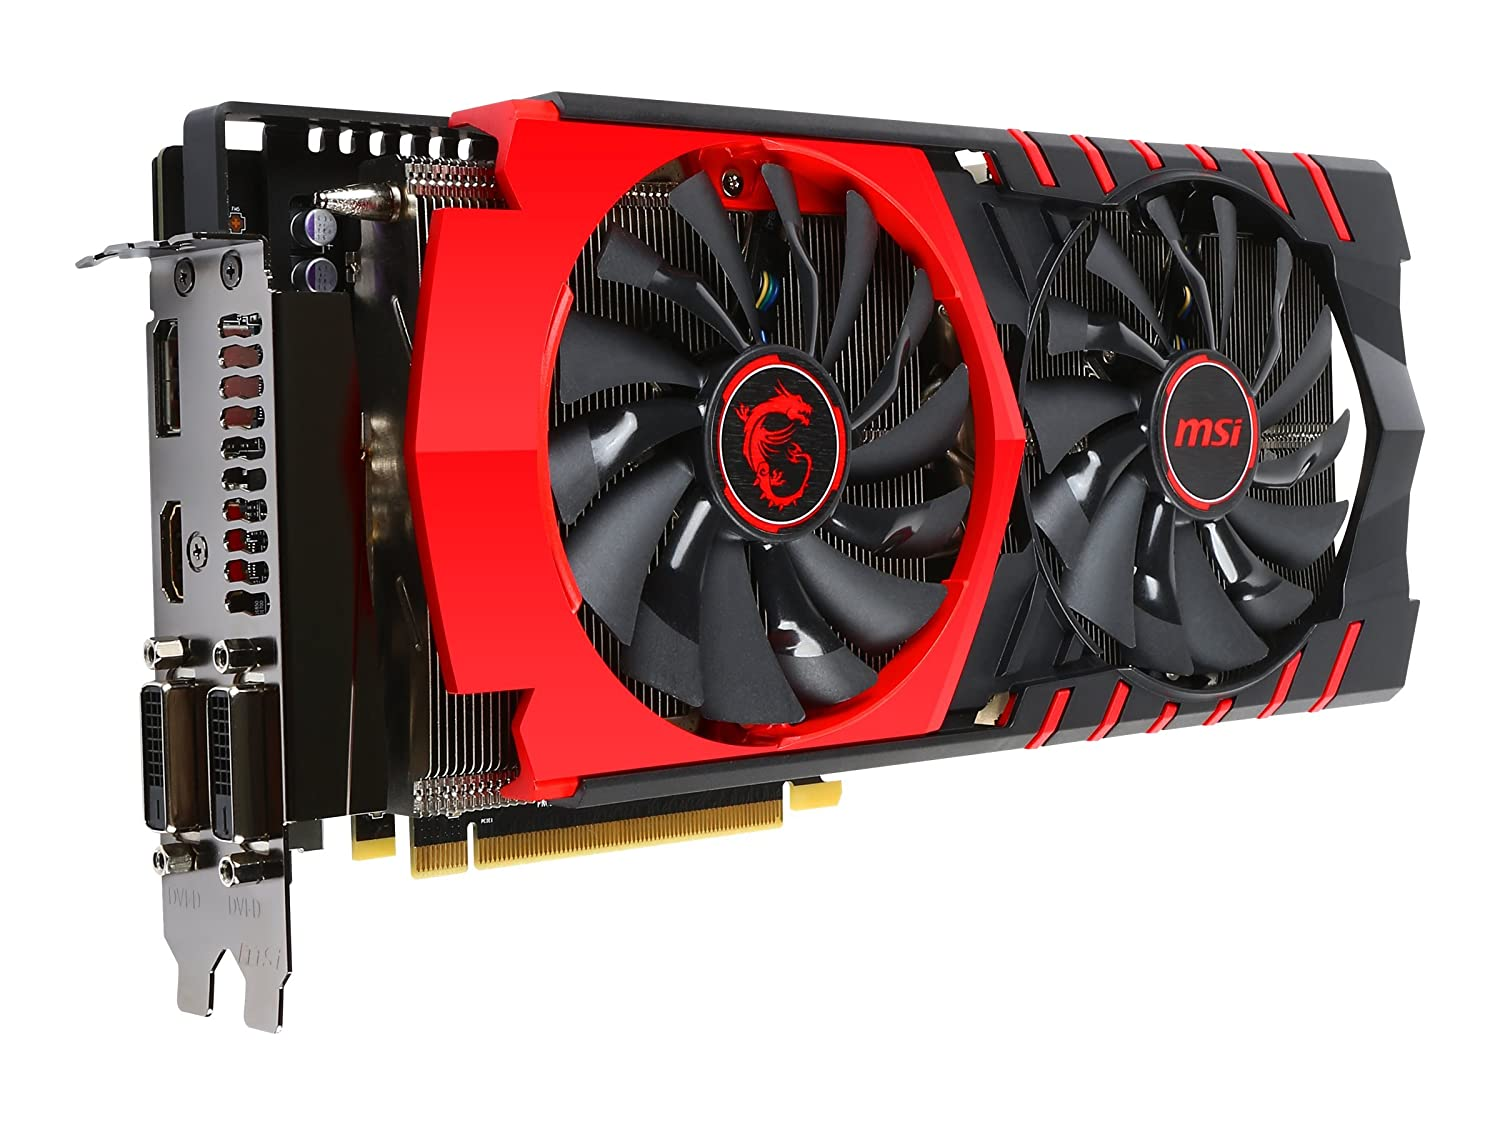 Amazon com: MSI R9 390 GAMING 8G Graphics Card: Computers